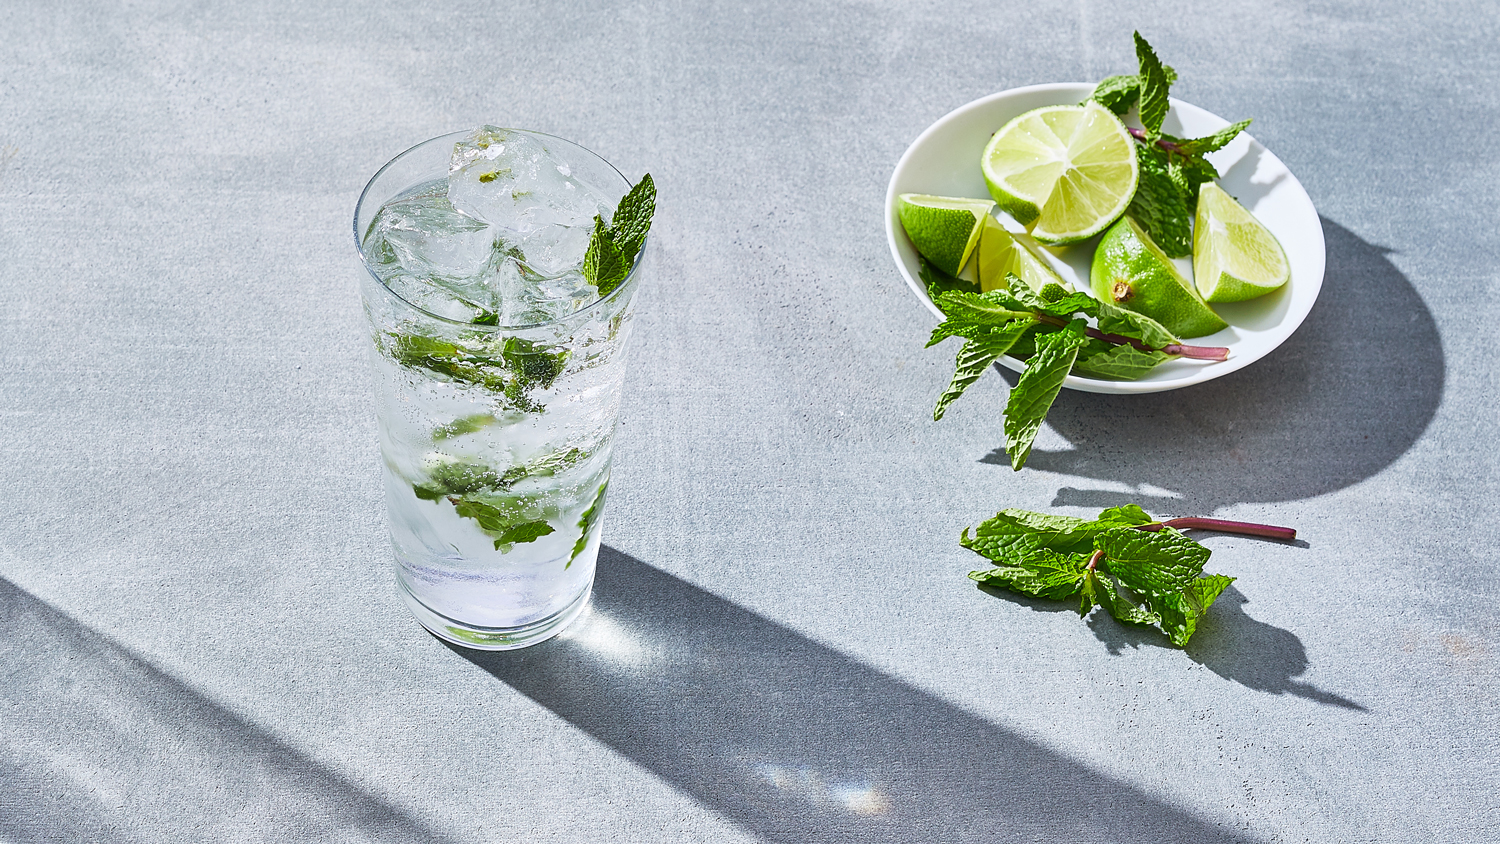 glass of mojito next to plate of limes